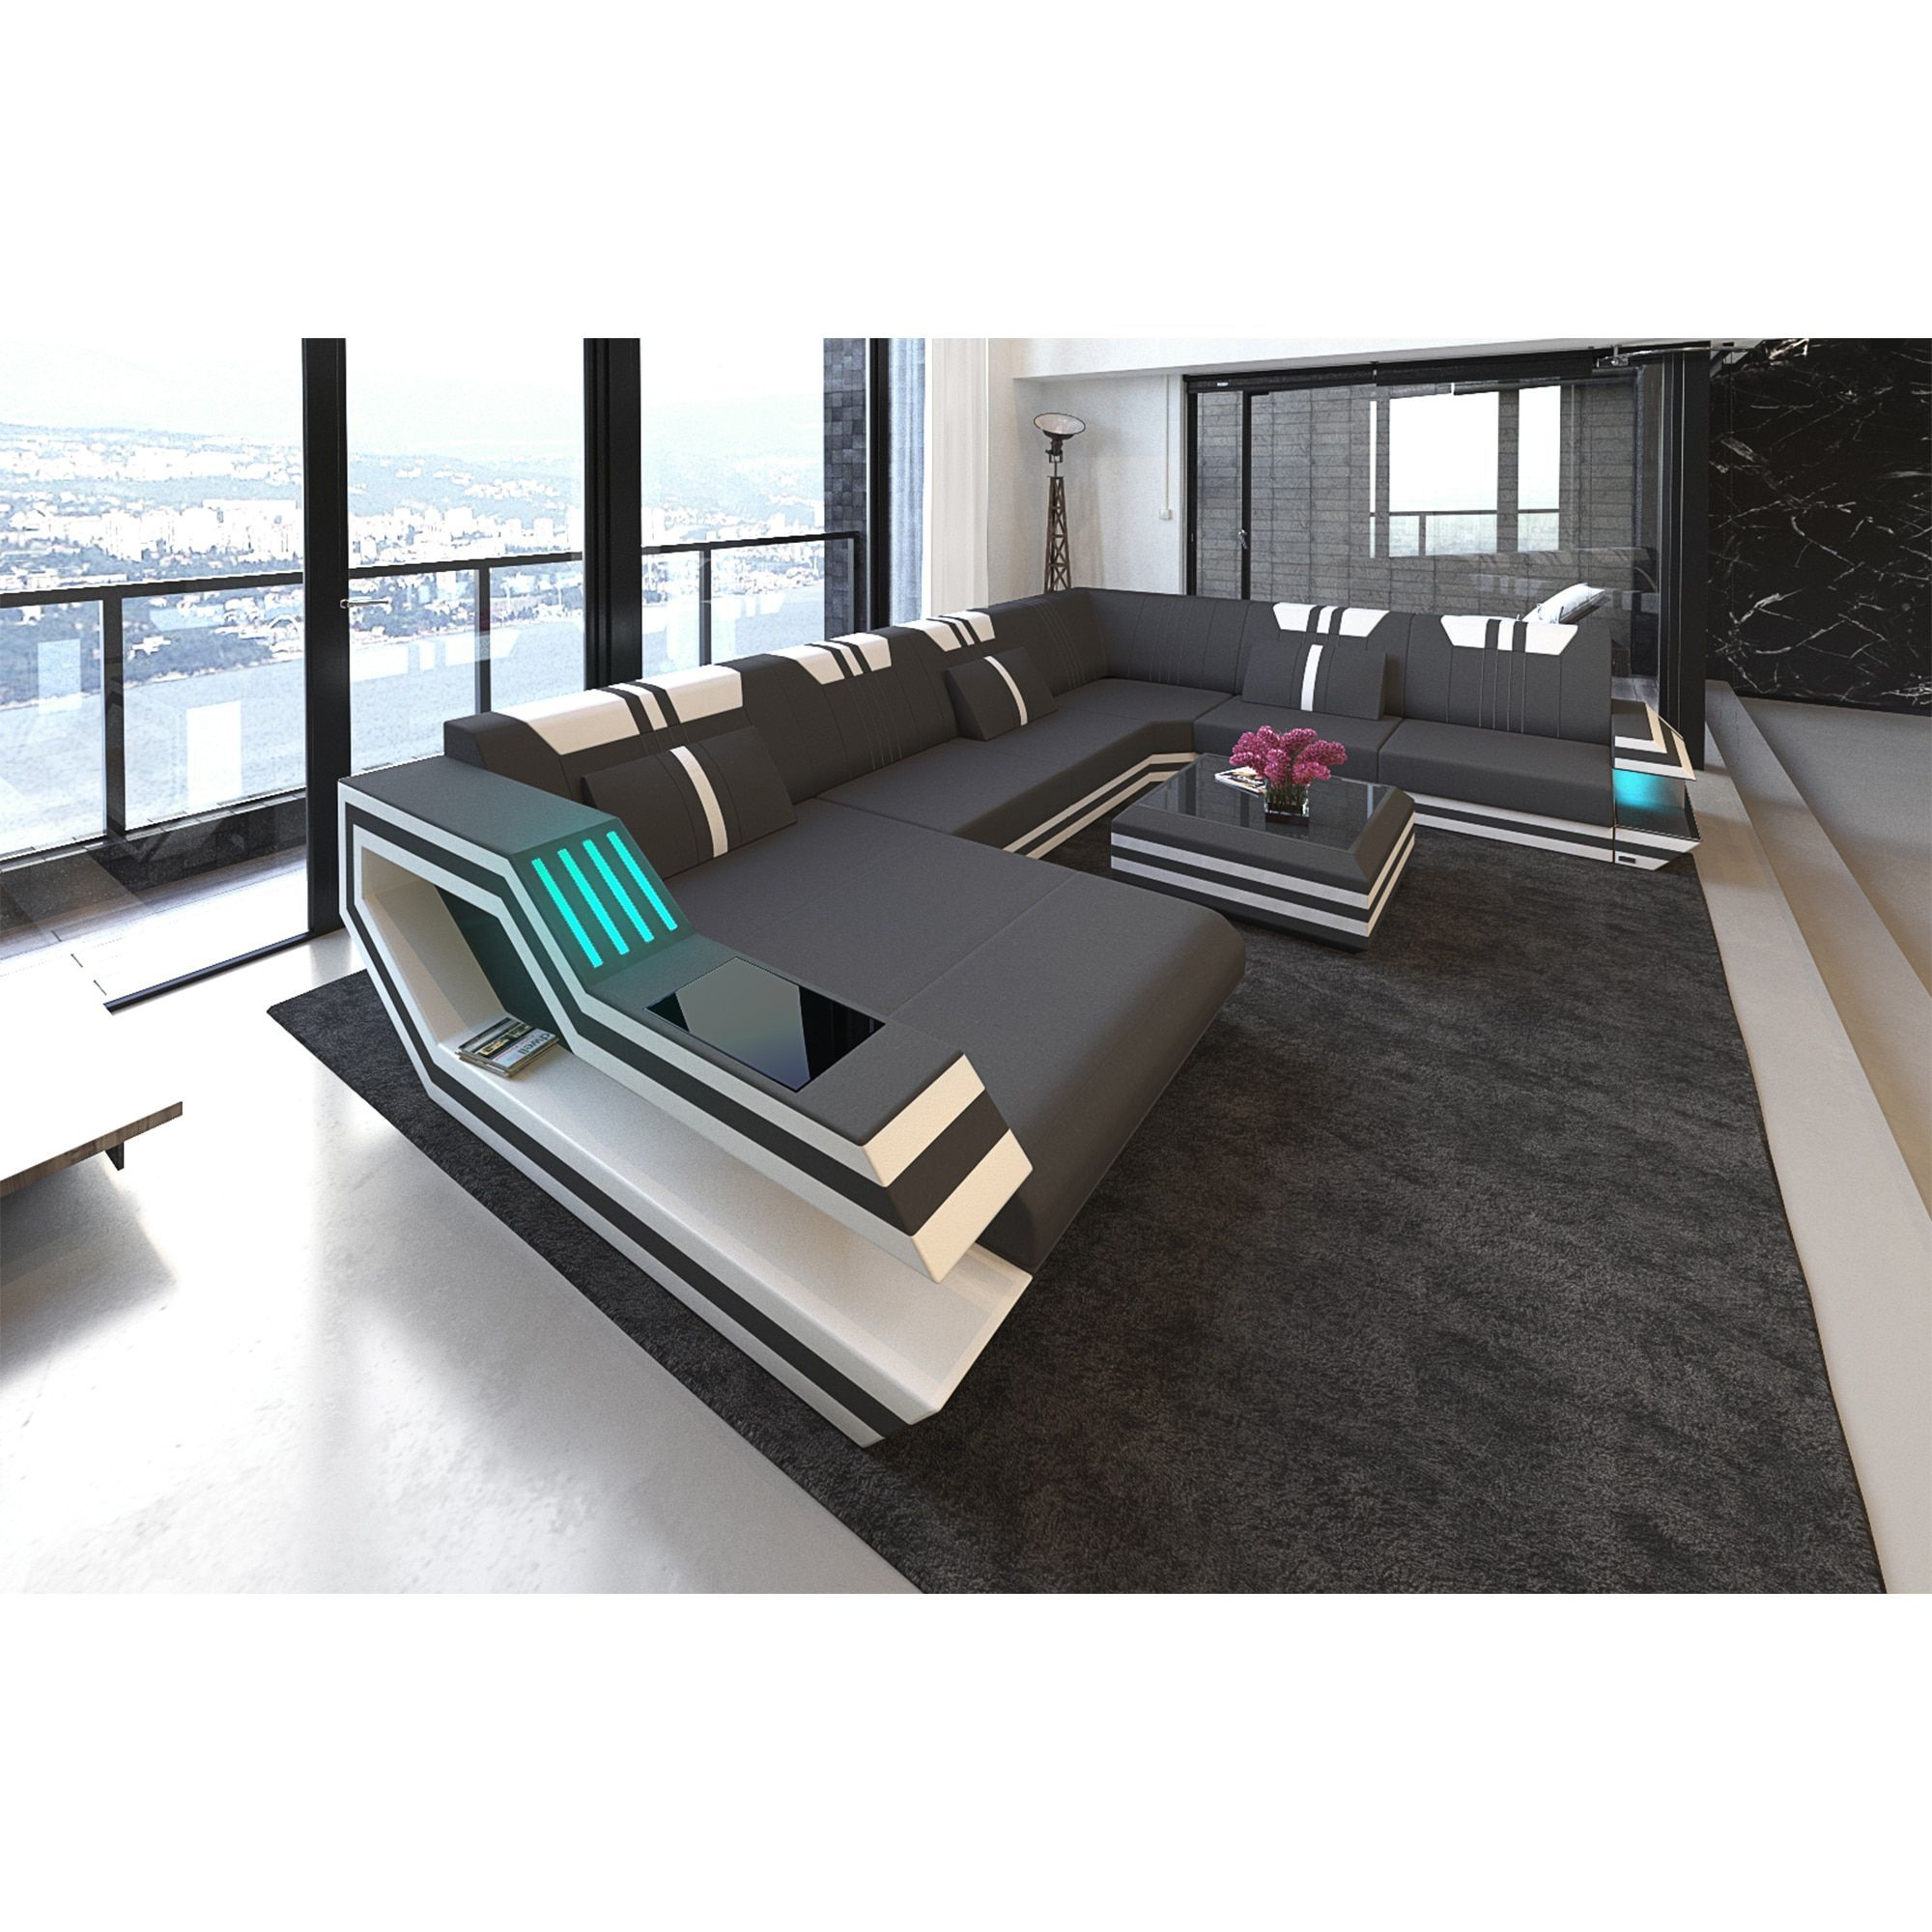 Sofadreams Hollywood Xxl Leather Sectional Sofa With Led Lights Usb Connection Sectional Sofa